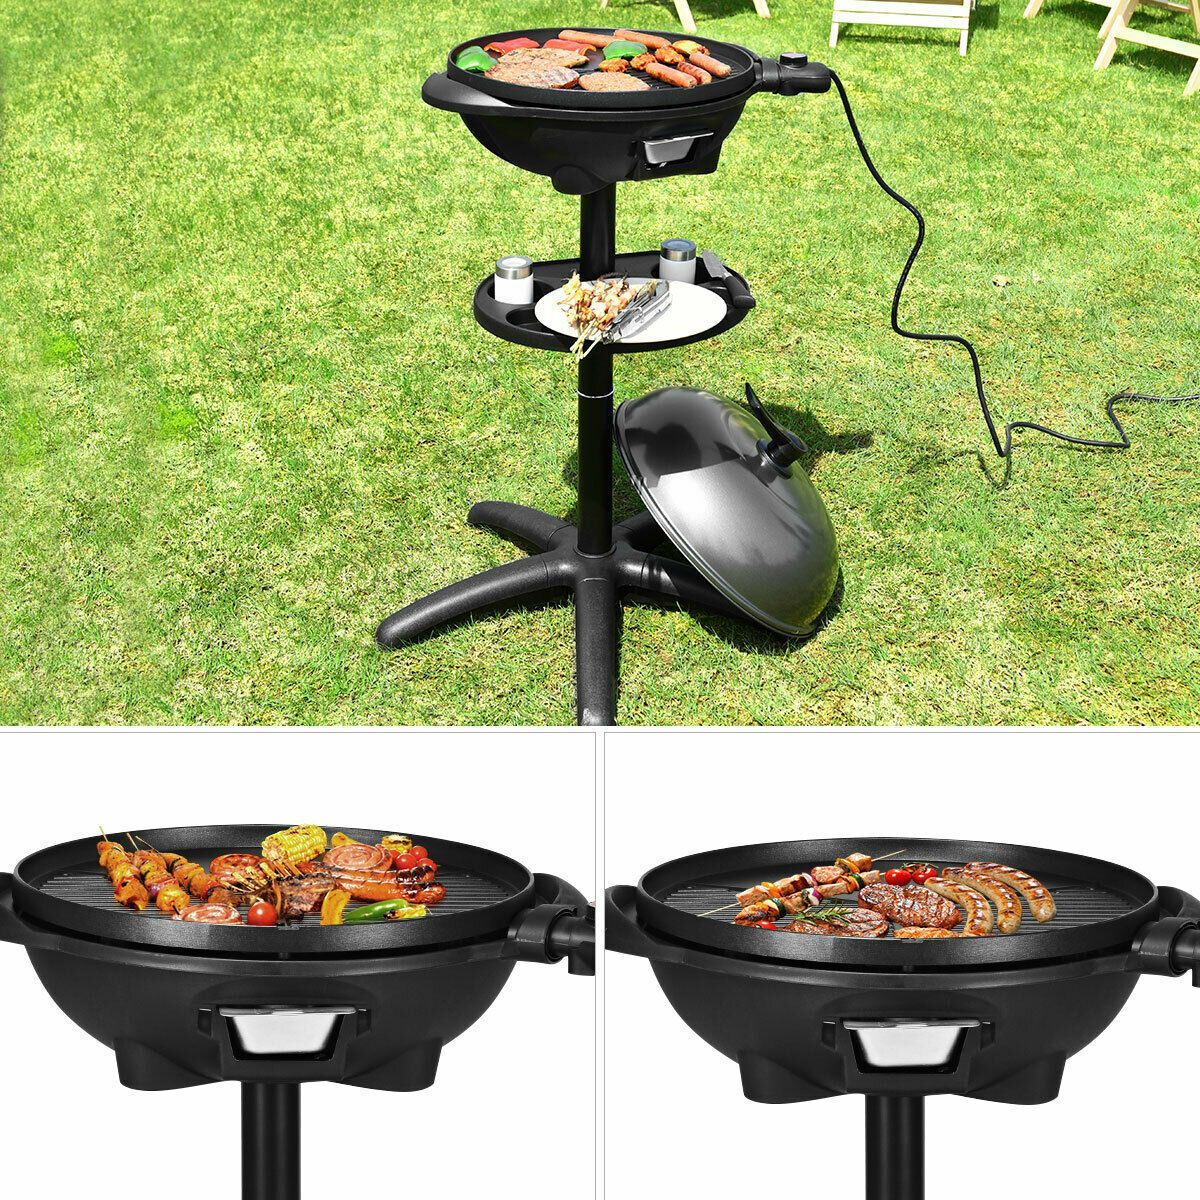 Electric Bbq Grill 1350w Non Stick 4 Temperature Setting Outdoor Garden Camping Electric Bbq Electric Bbq Grill Bbq Grill